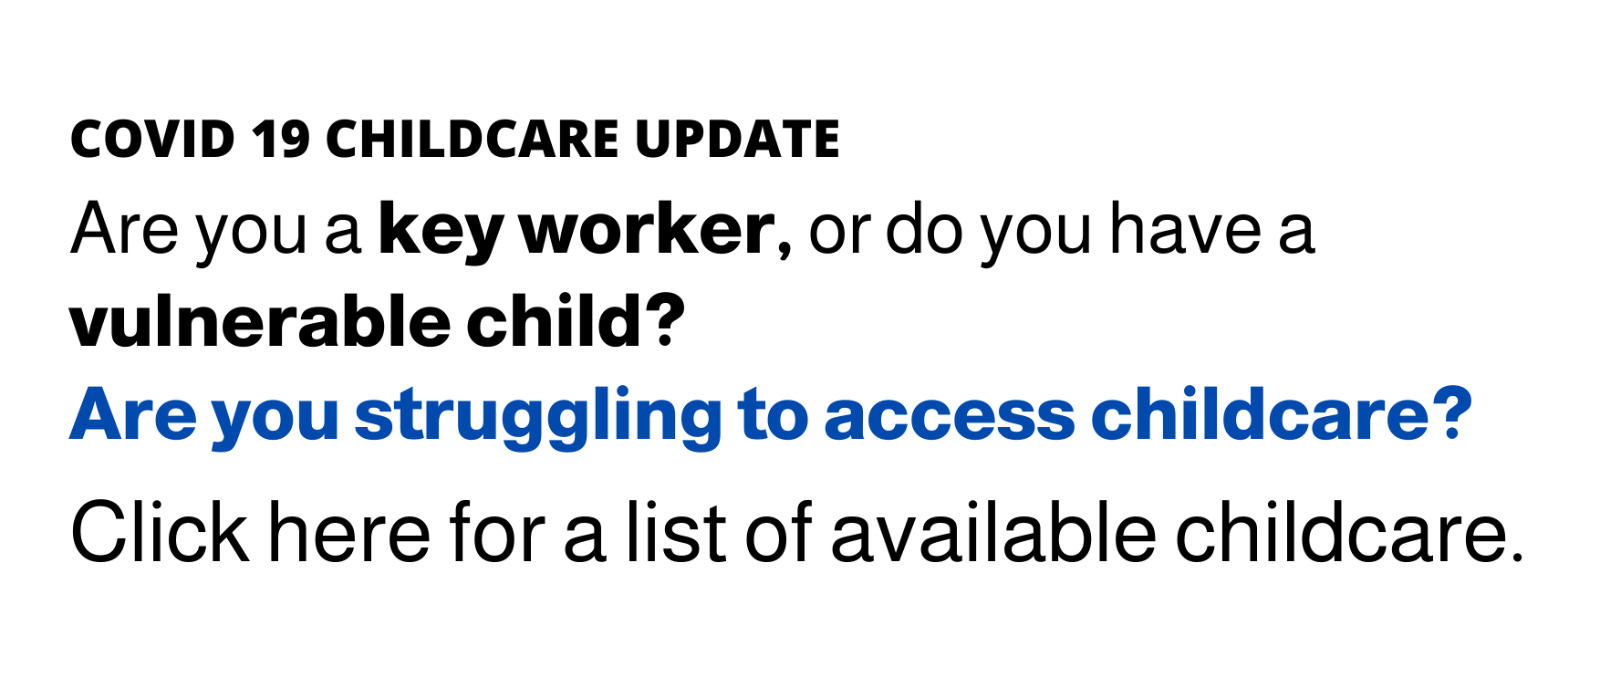 Click here for childcare for key workers and vulnerable children